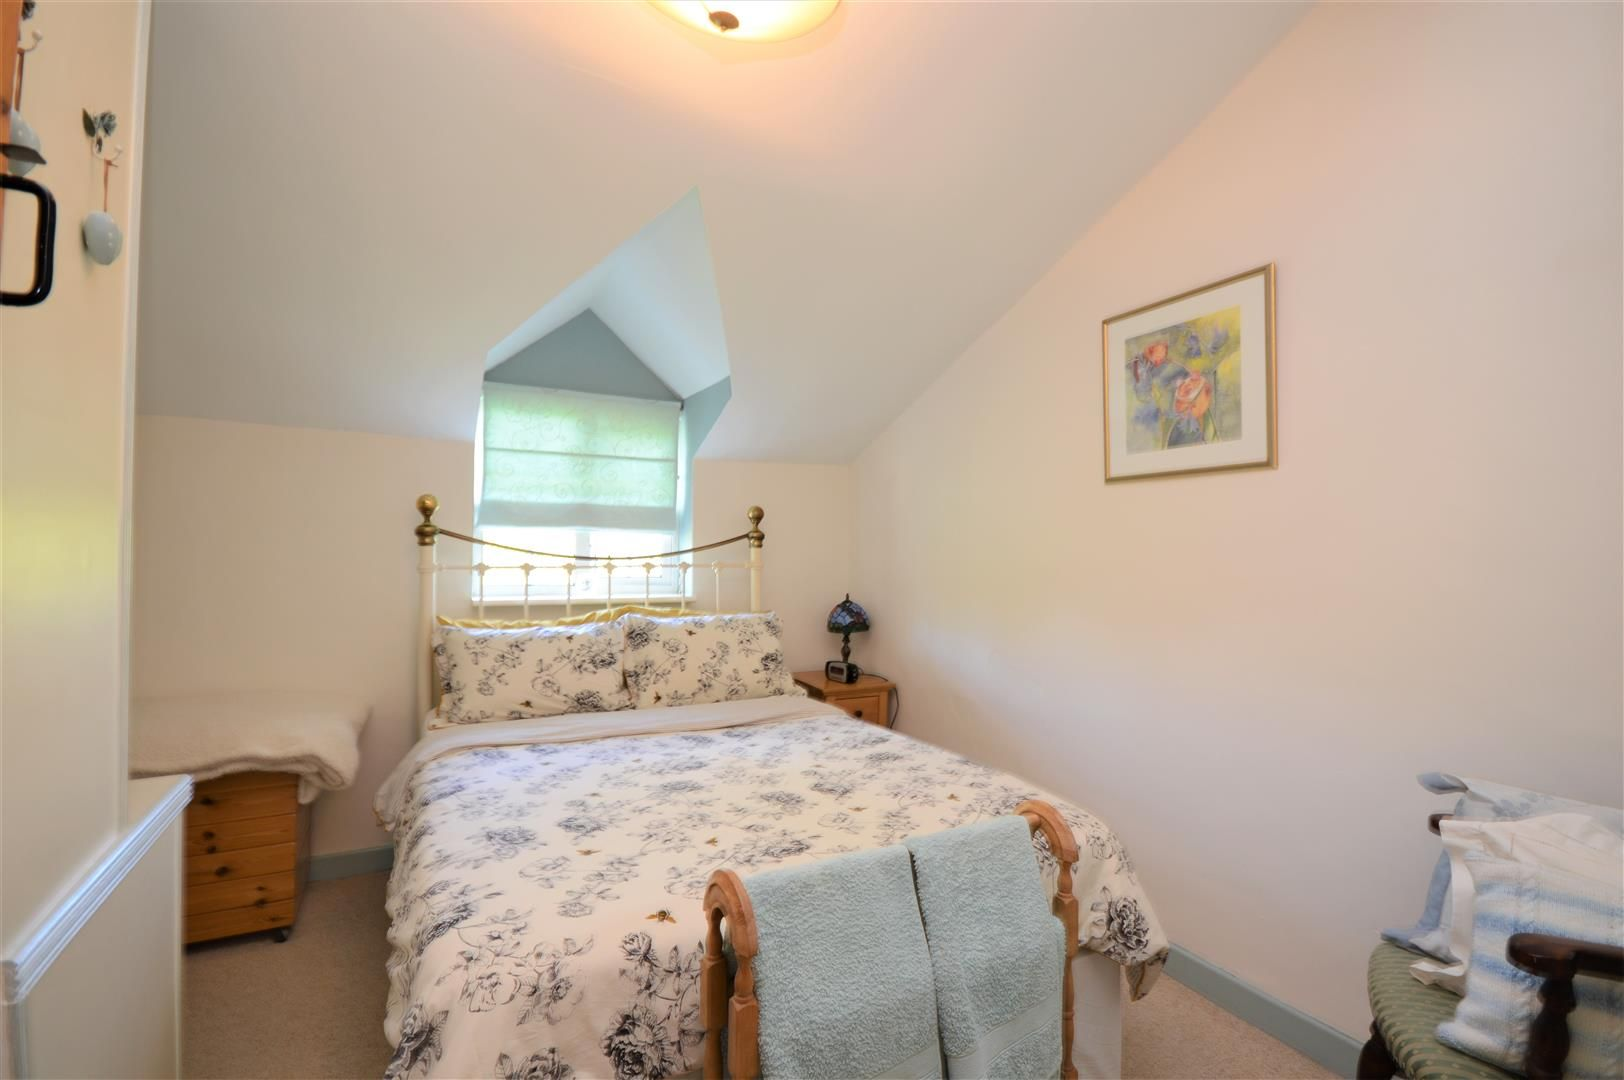 3 bed semi-detached for sale in Stretton Sugwas  - Property Image 11